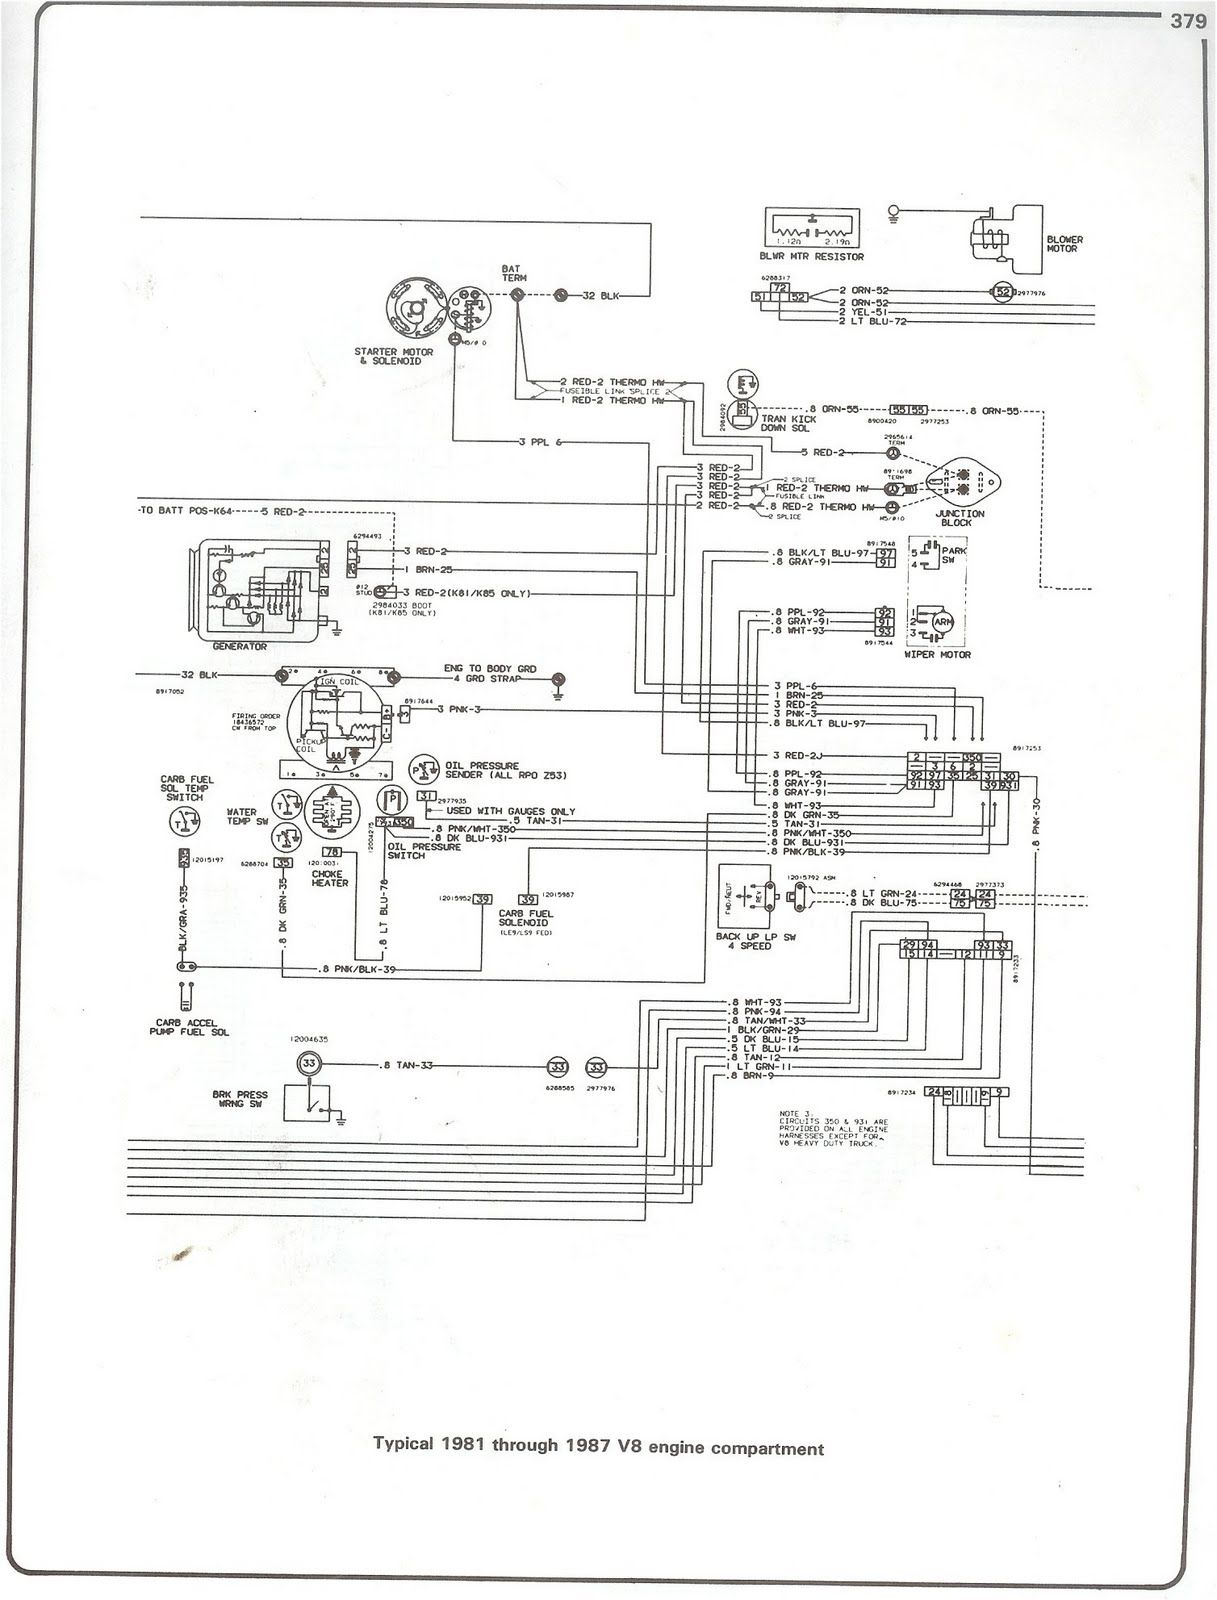 small resolution of this is engine compartment wiring diagram for 1981 trough 1987 3 4 liter gm engine compartment diagram